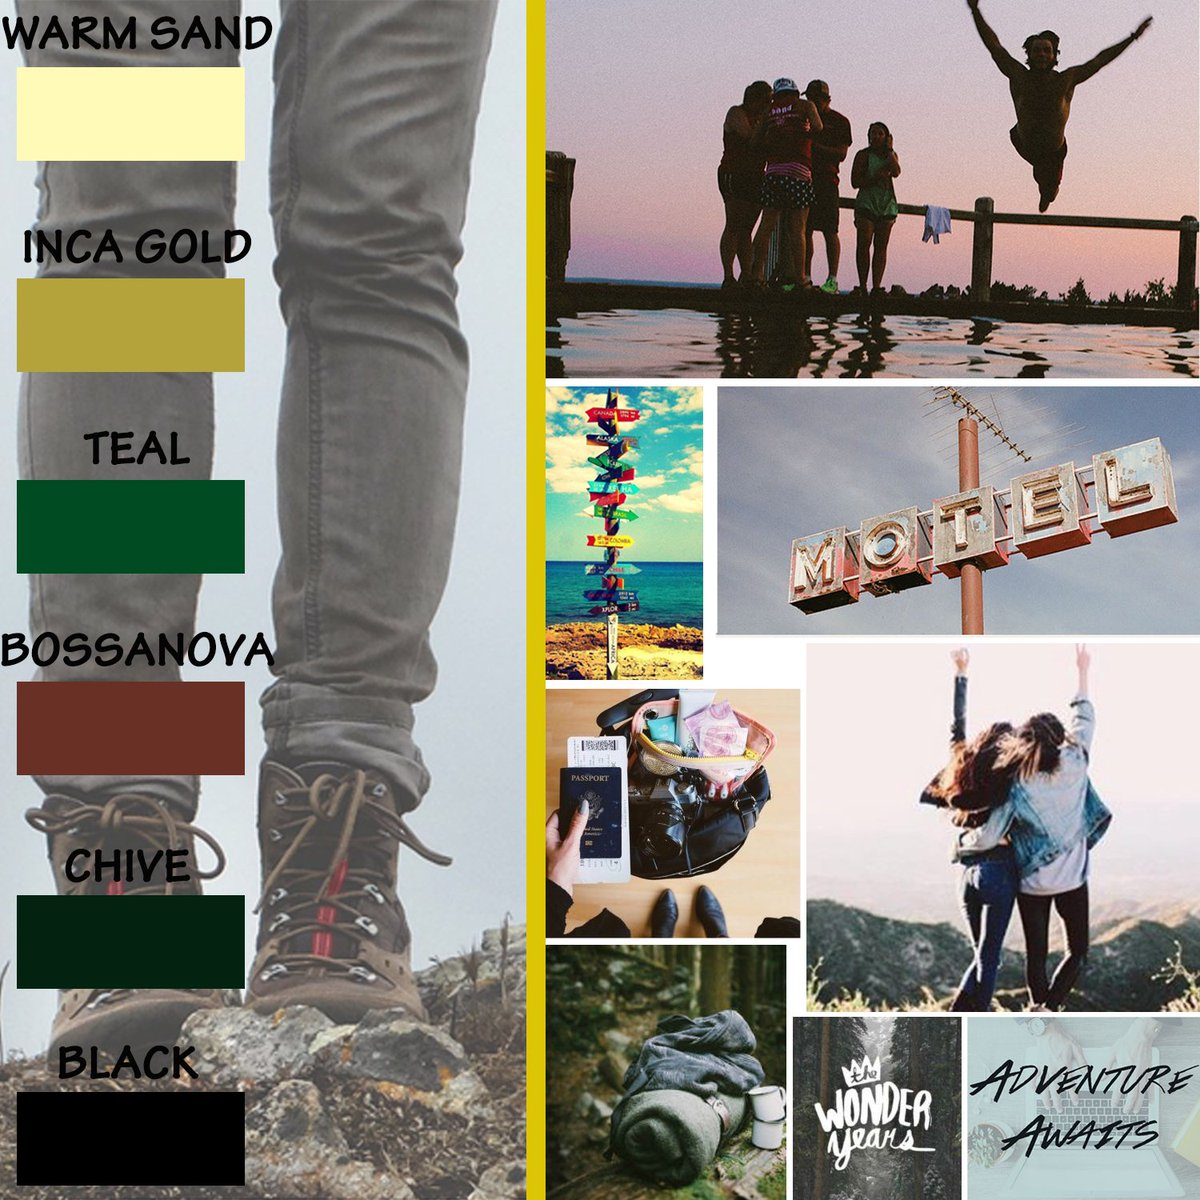 An exciting way of getting started ahead for a wild beginning. #themes #moodboard #adventure #loveforadventure #beingsporty #mensfashionpic.twitter.com/hqxvqVequa